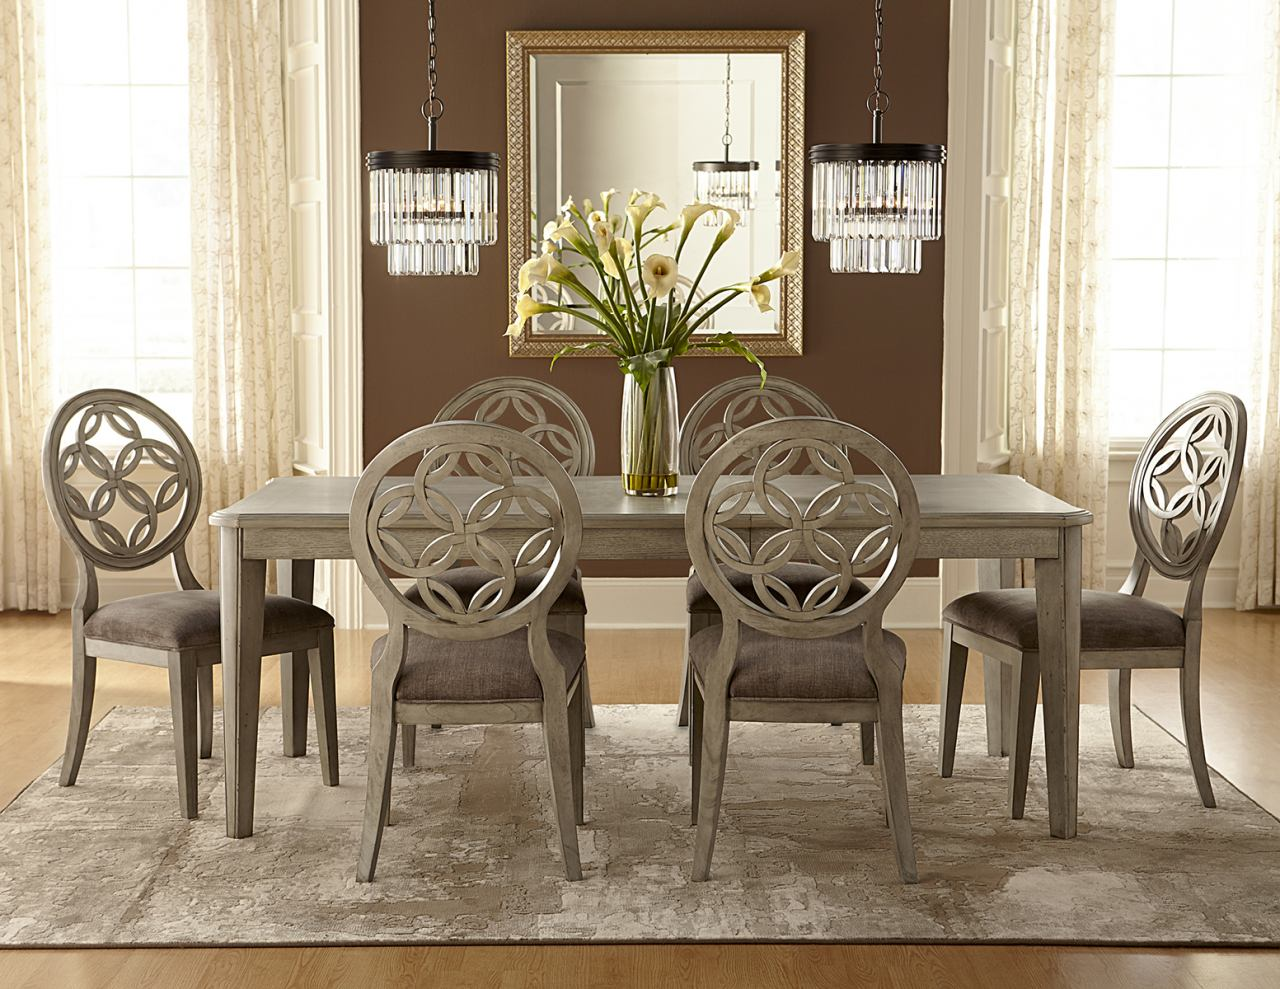 Hillsdale Furniture Savona 7pc Dining Room Set in Vintage Gray